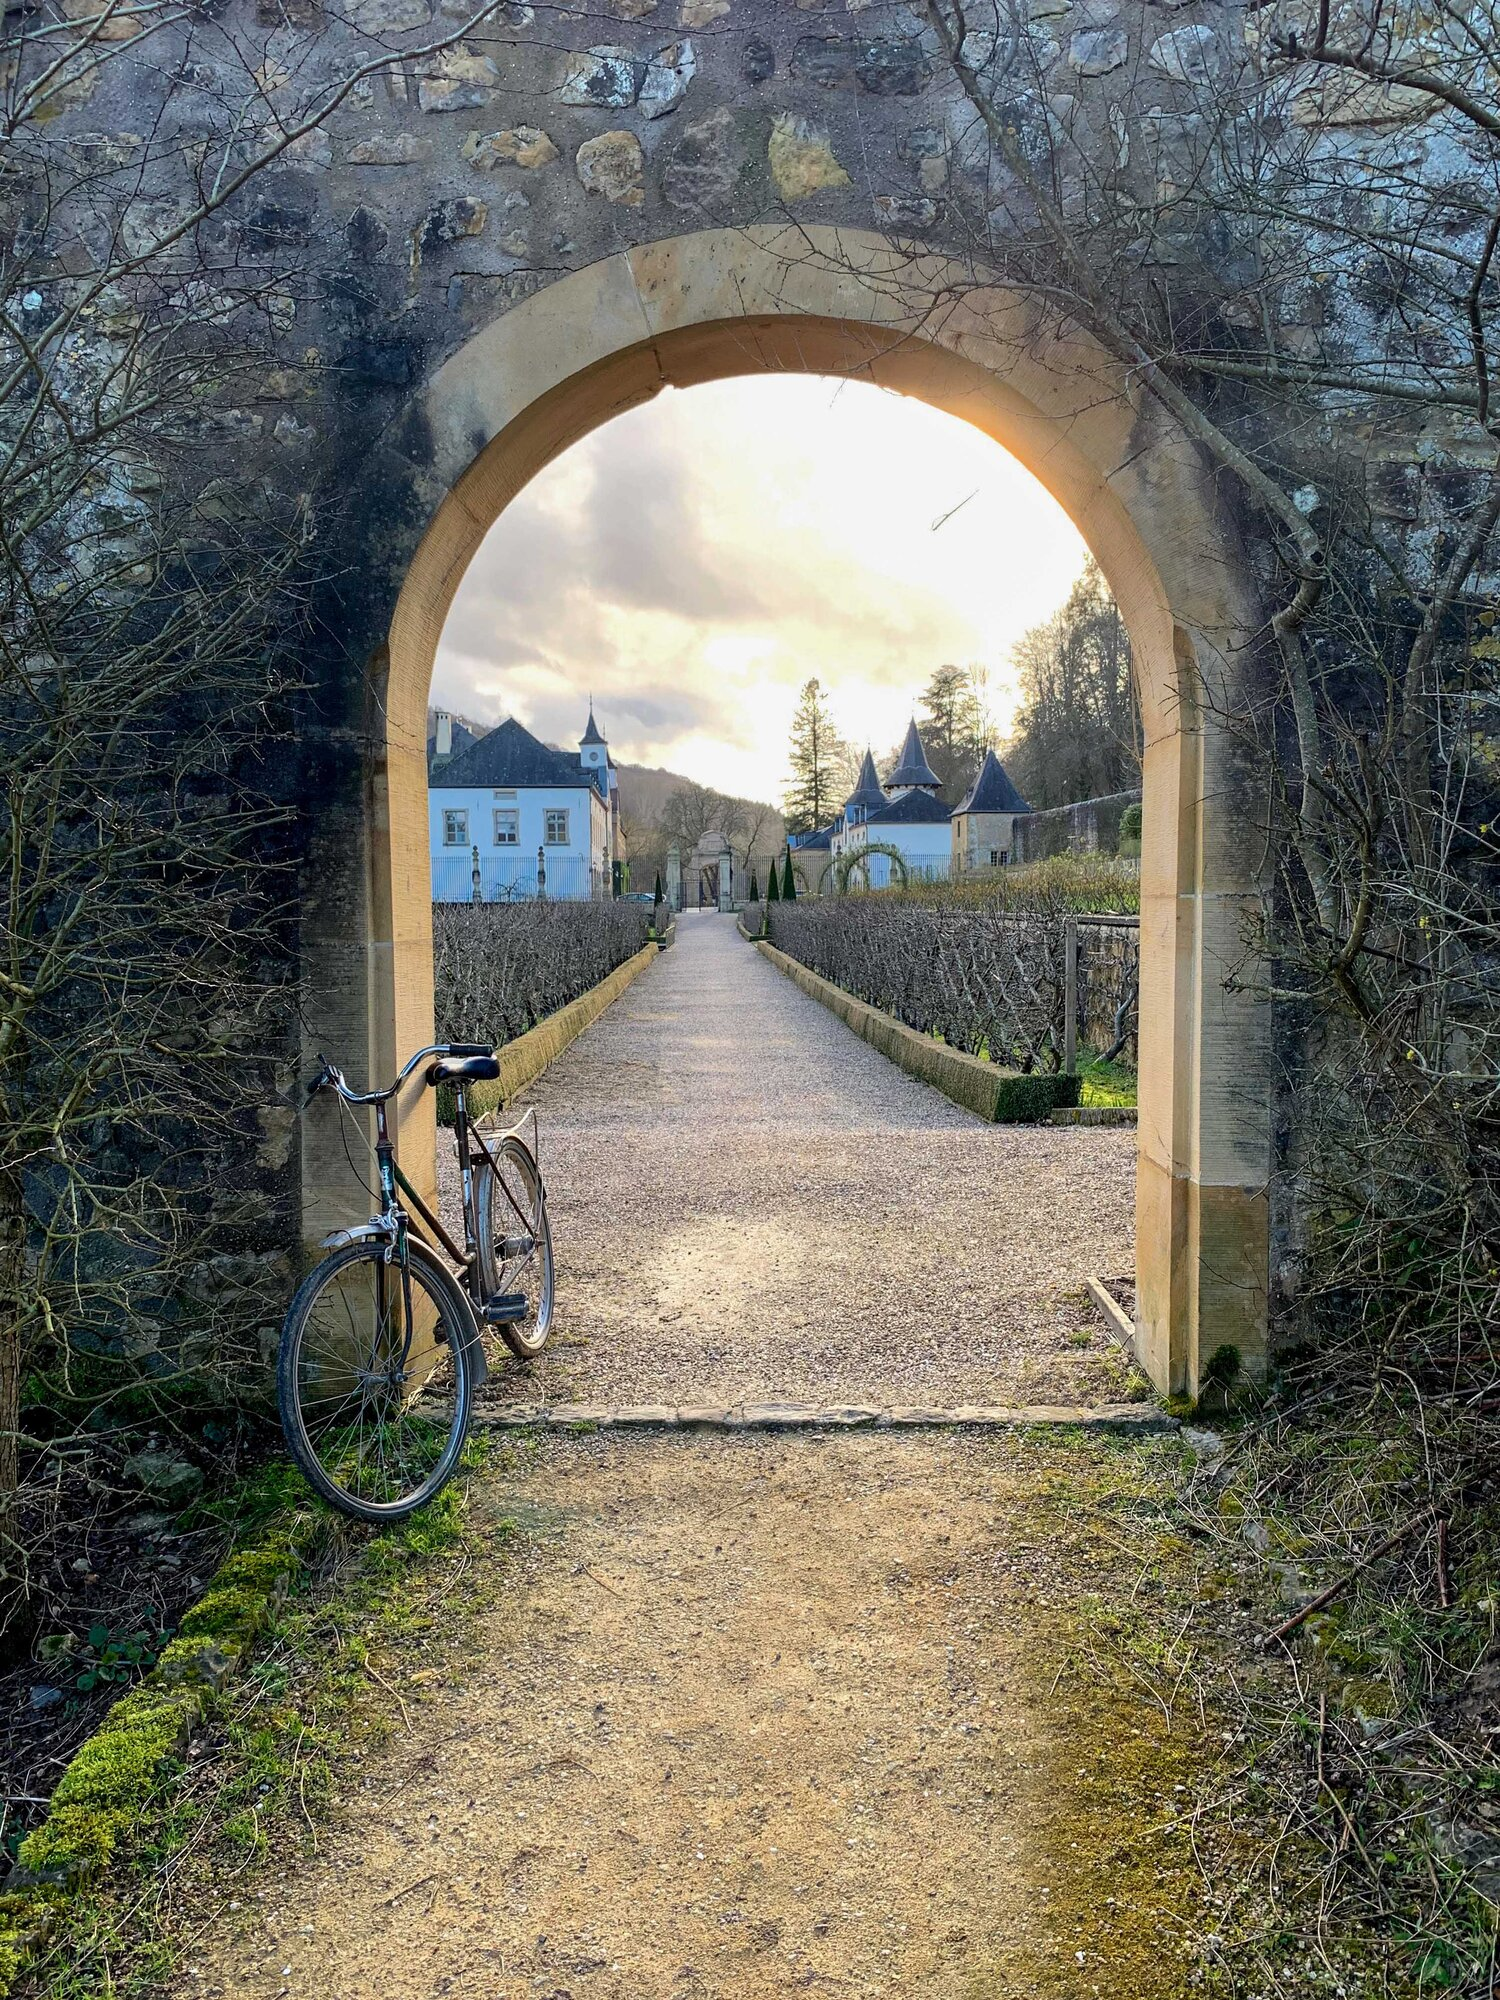 How to Spend A Day in Luxembourg?